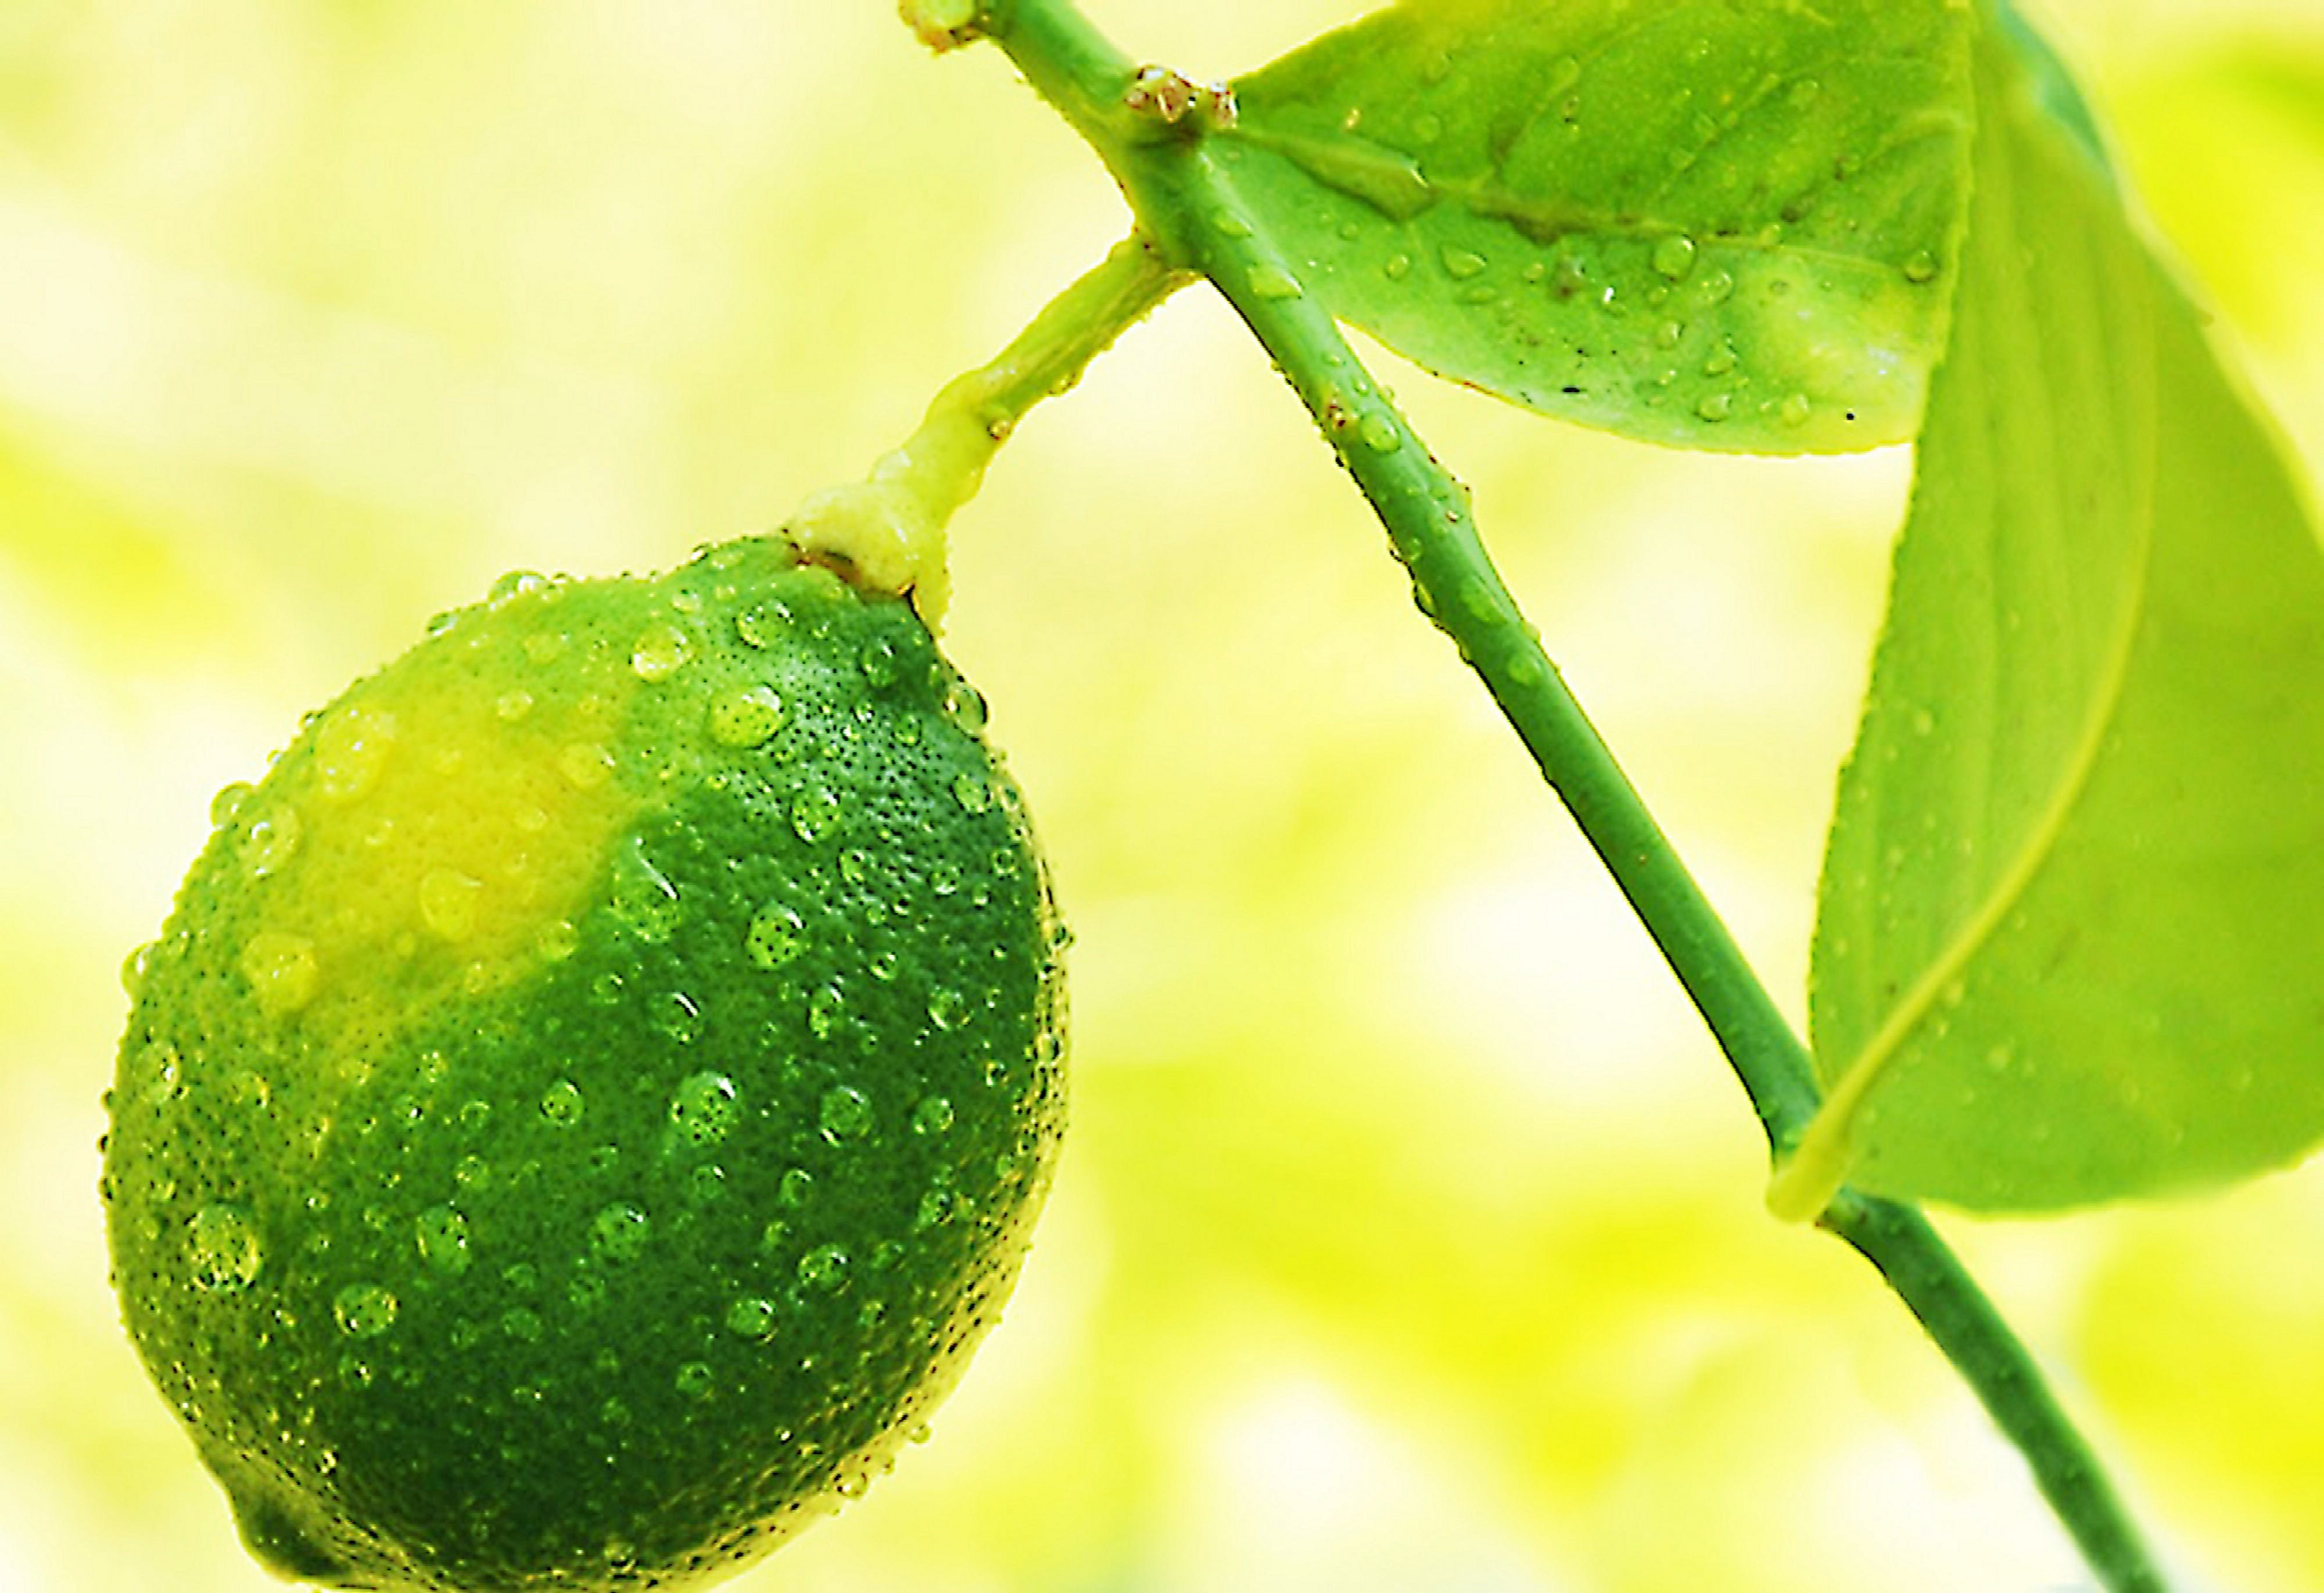 Free stock photo of lime, water drops